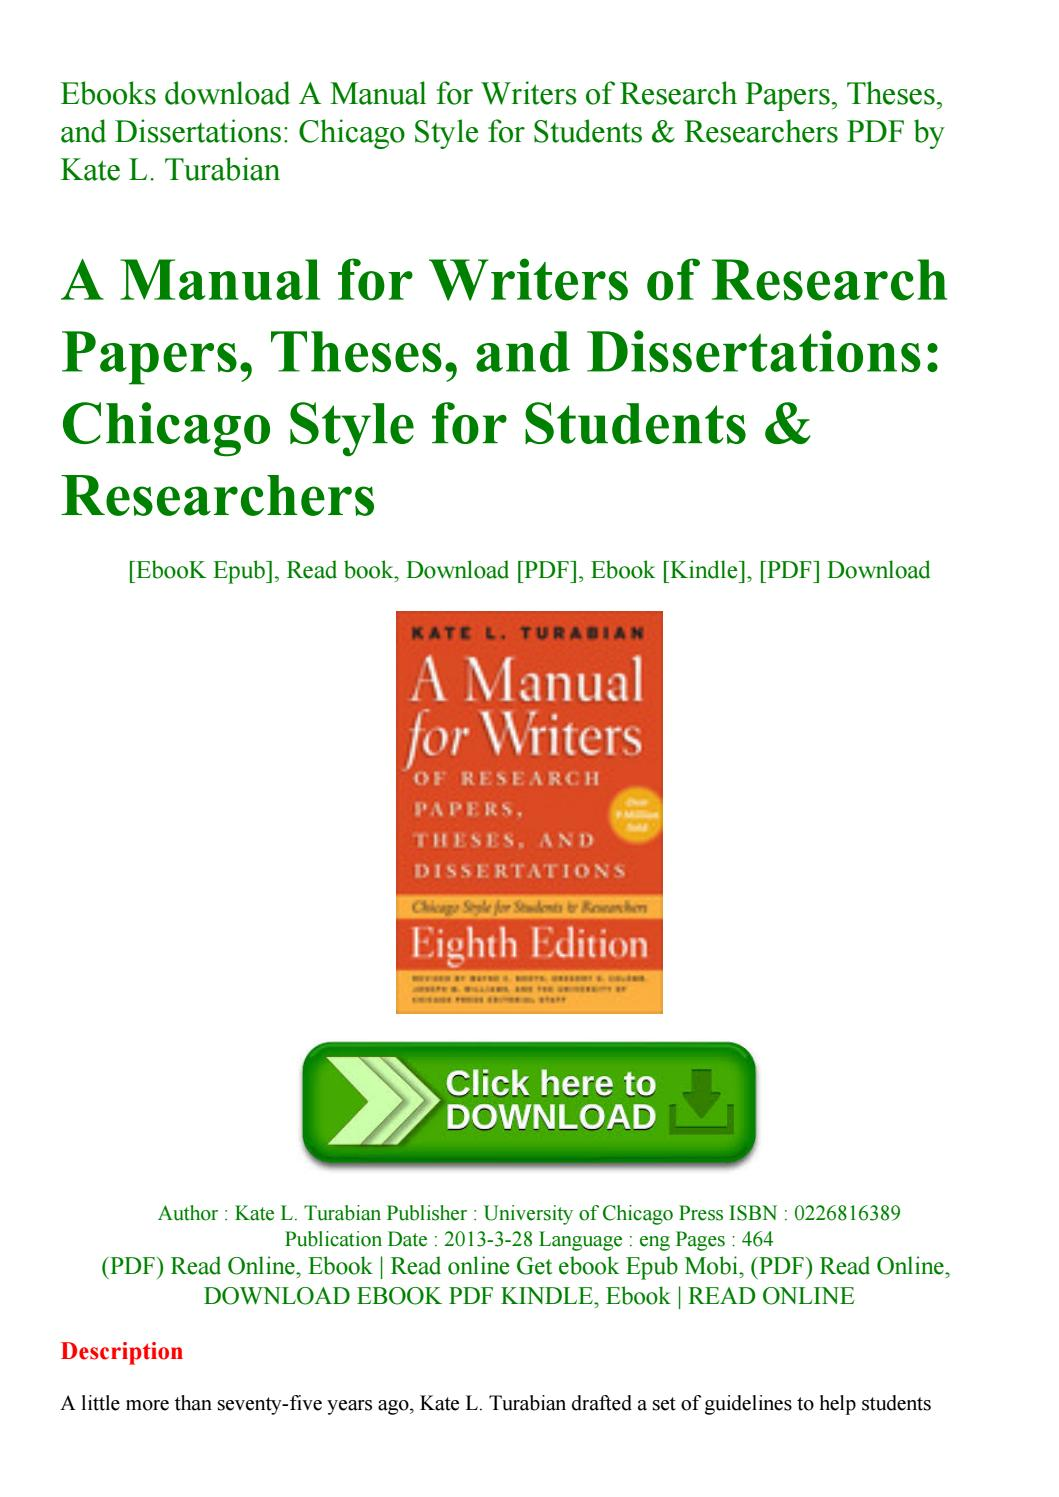 006 Manual For Writers Of Researchs Theses And Dissertations Turabian Page 1 Amazing A Research Papers Pdf Full